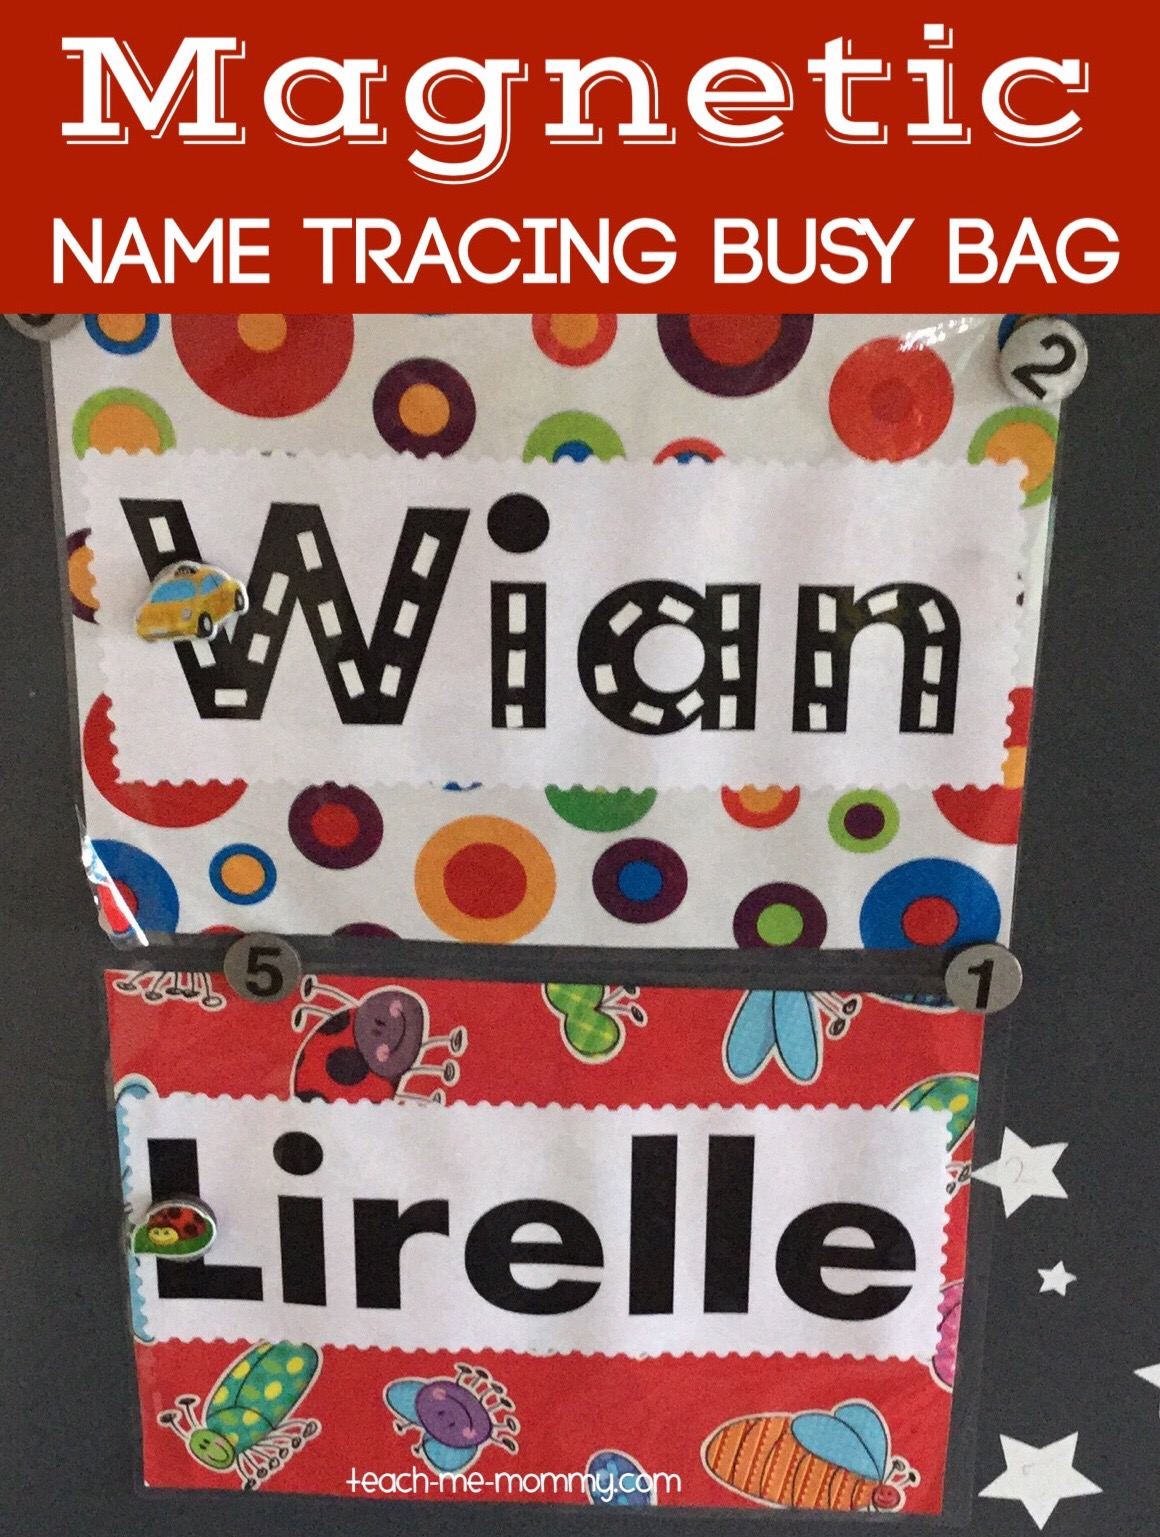 Magnetic Name Trace Busy Bag - Teach Me Mommy pertaining to Name Tracing Powerful Mothering